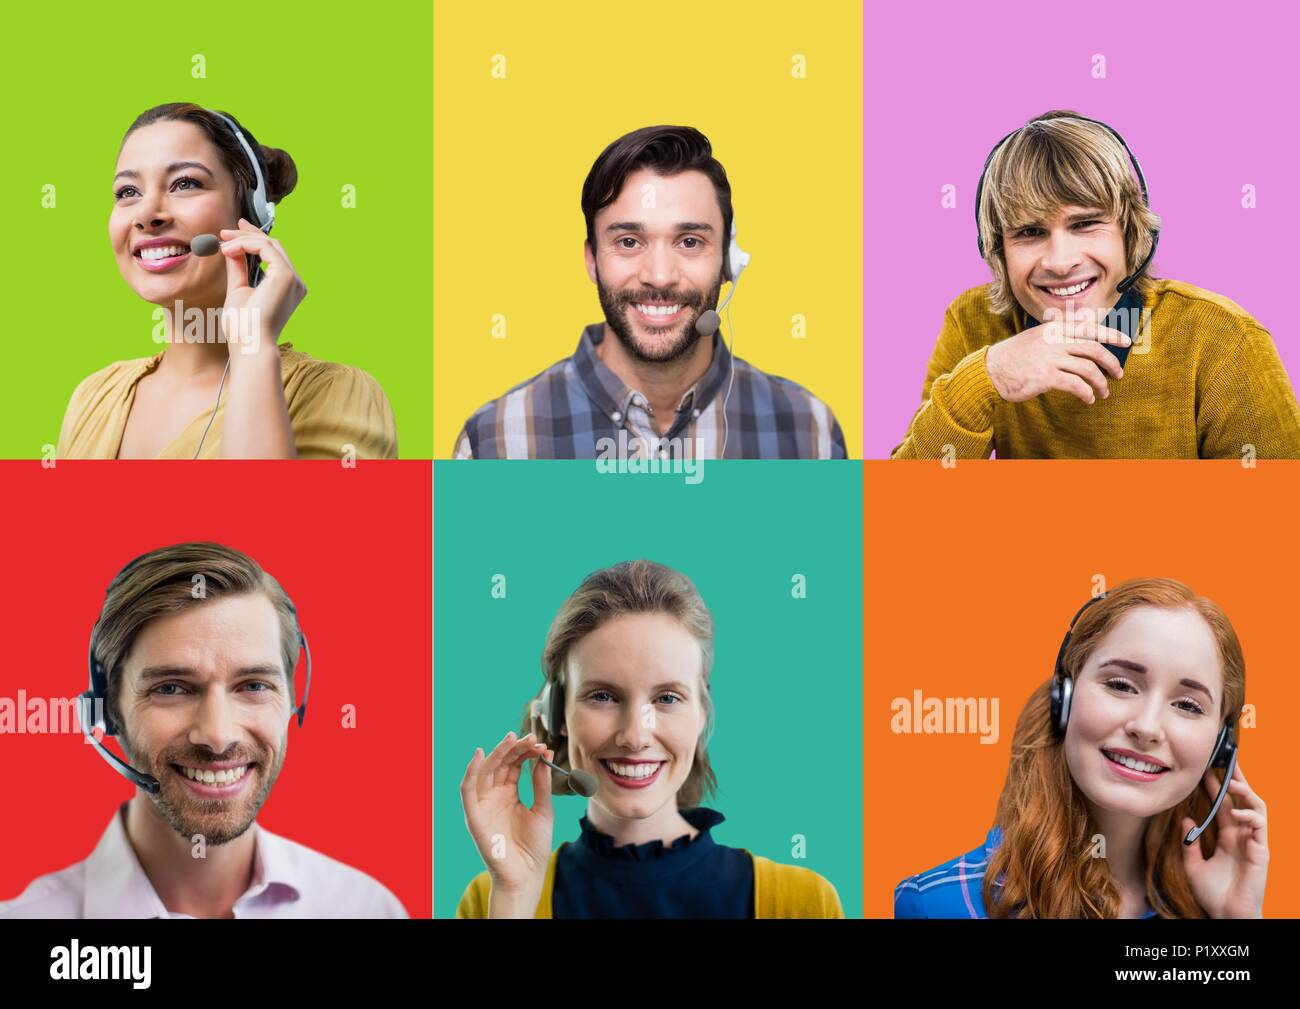 Call Center customer service people in colorful square sections - Stock Image